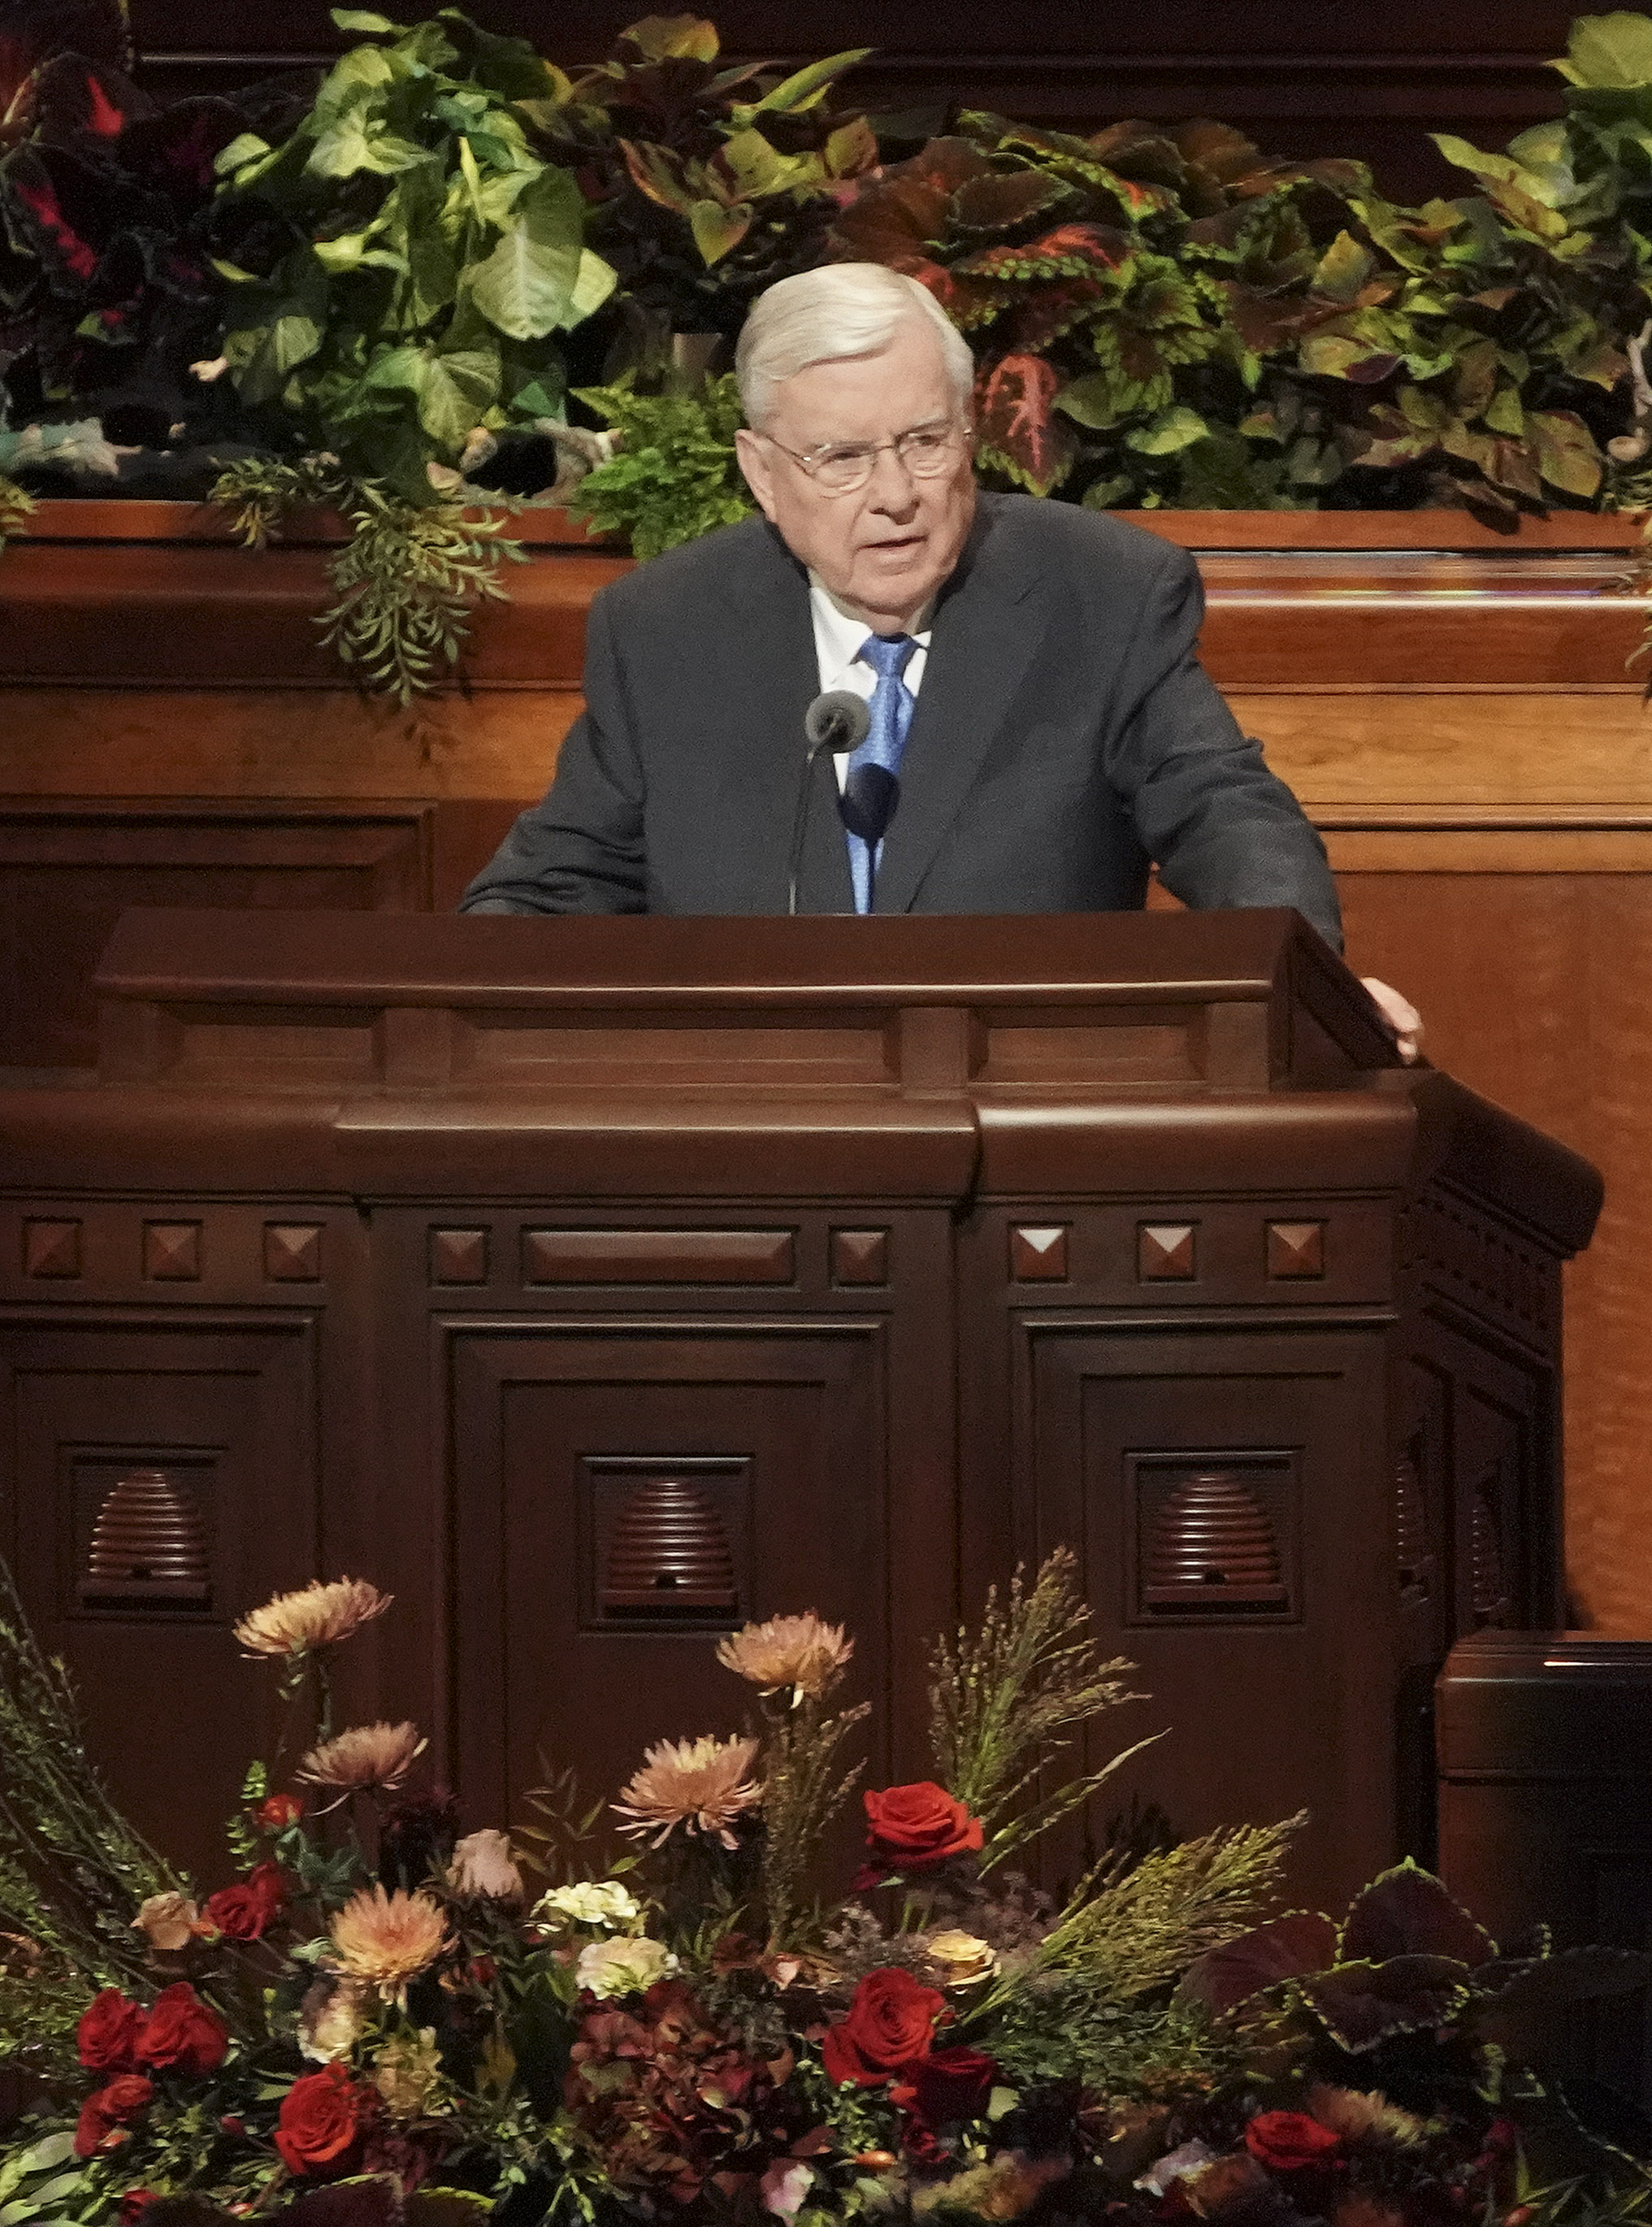 President M. Russell Ballard, acting president of the Quorum of the Twelve Apostles, speaks during the Sunday afternoon session of the 189th Semiannual General Conference of The Church of Jesus Christ of Latter-day Saints in Salt Lake City on Oct. 6, 2019.